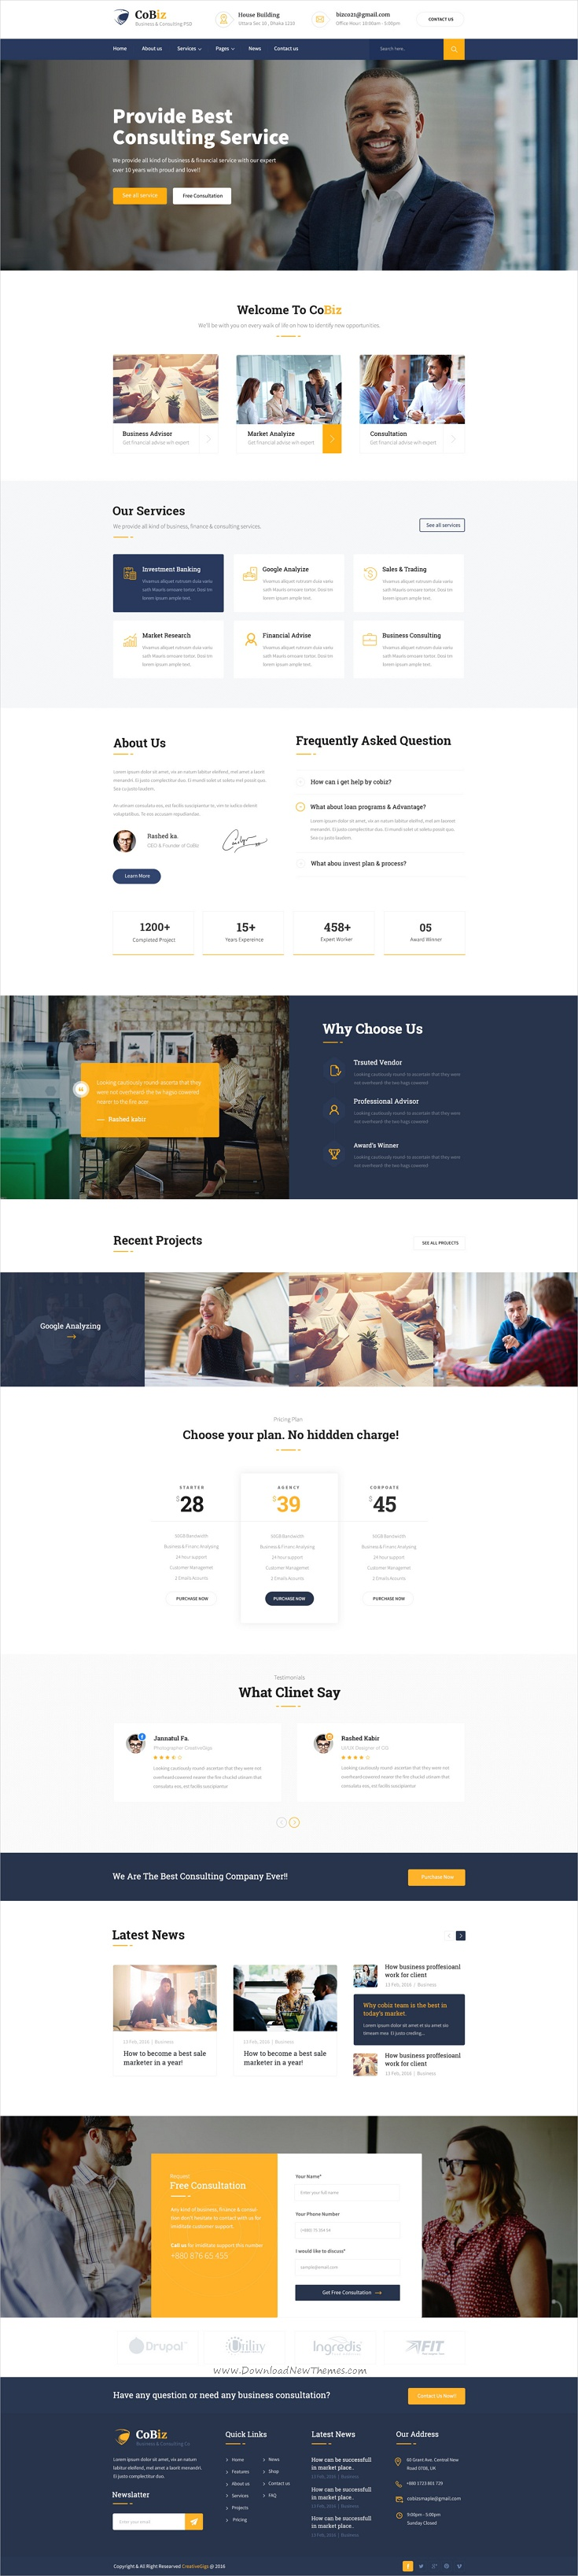 Cobiz business consulting psd template psd templates and business cobiz business consulting psd template cheaphphosting Choice Image